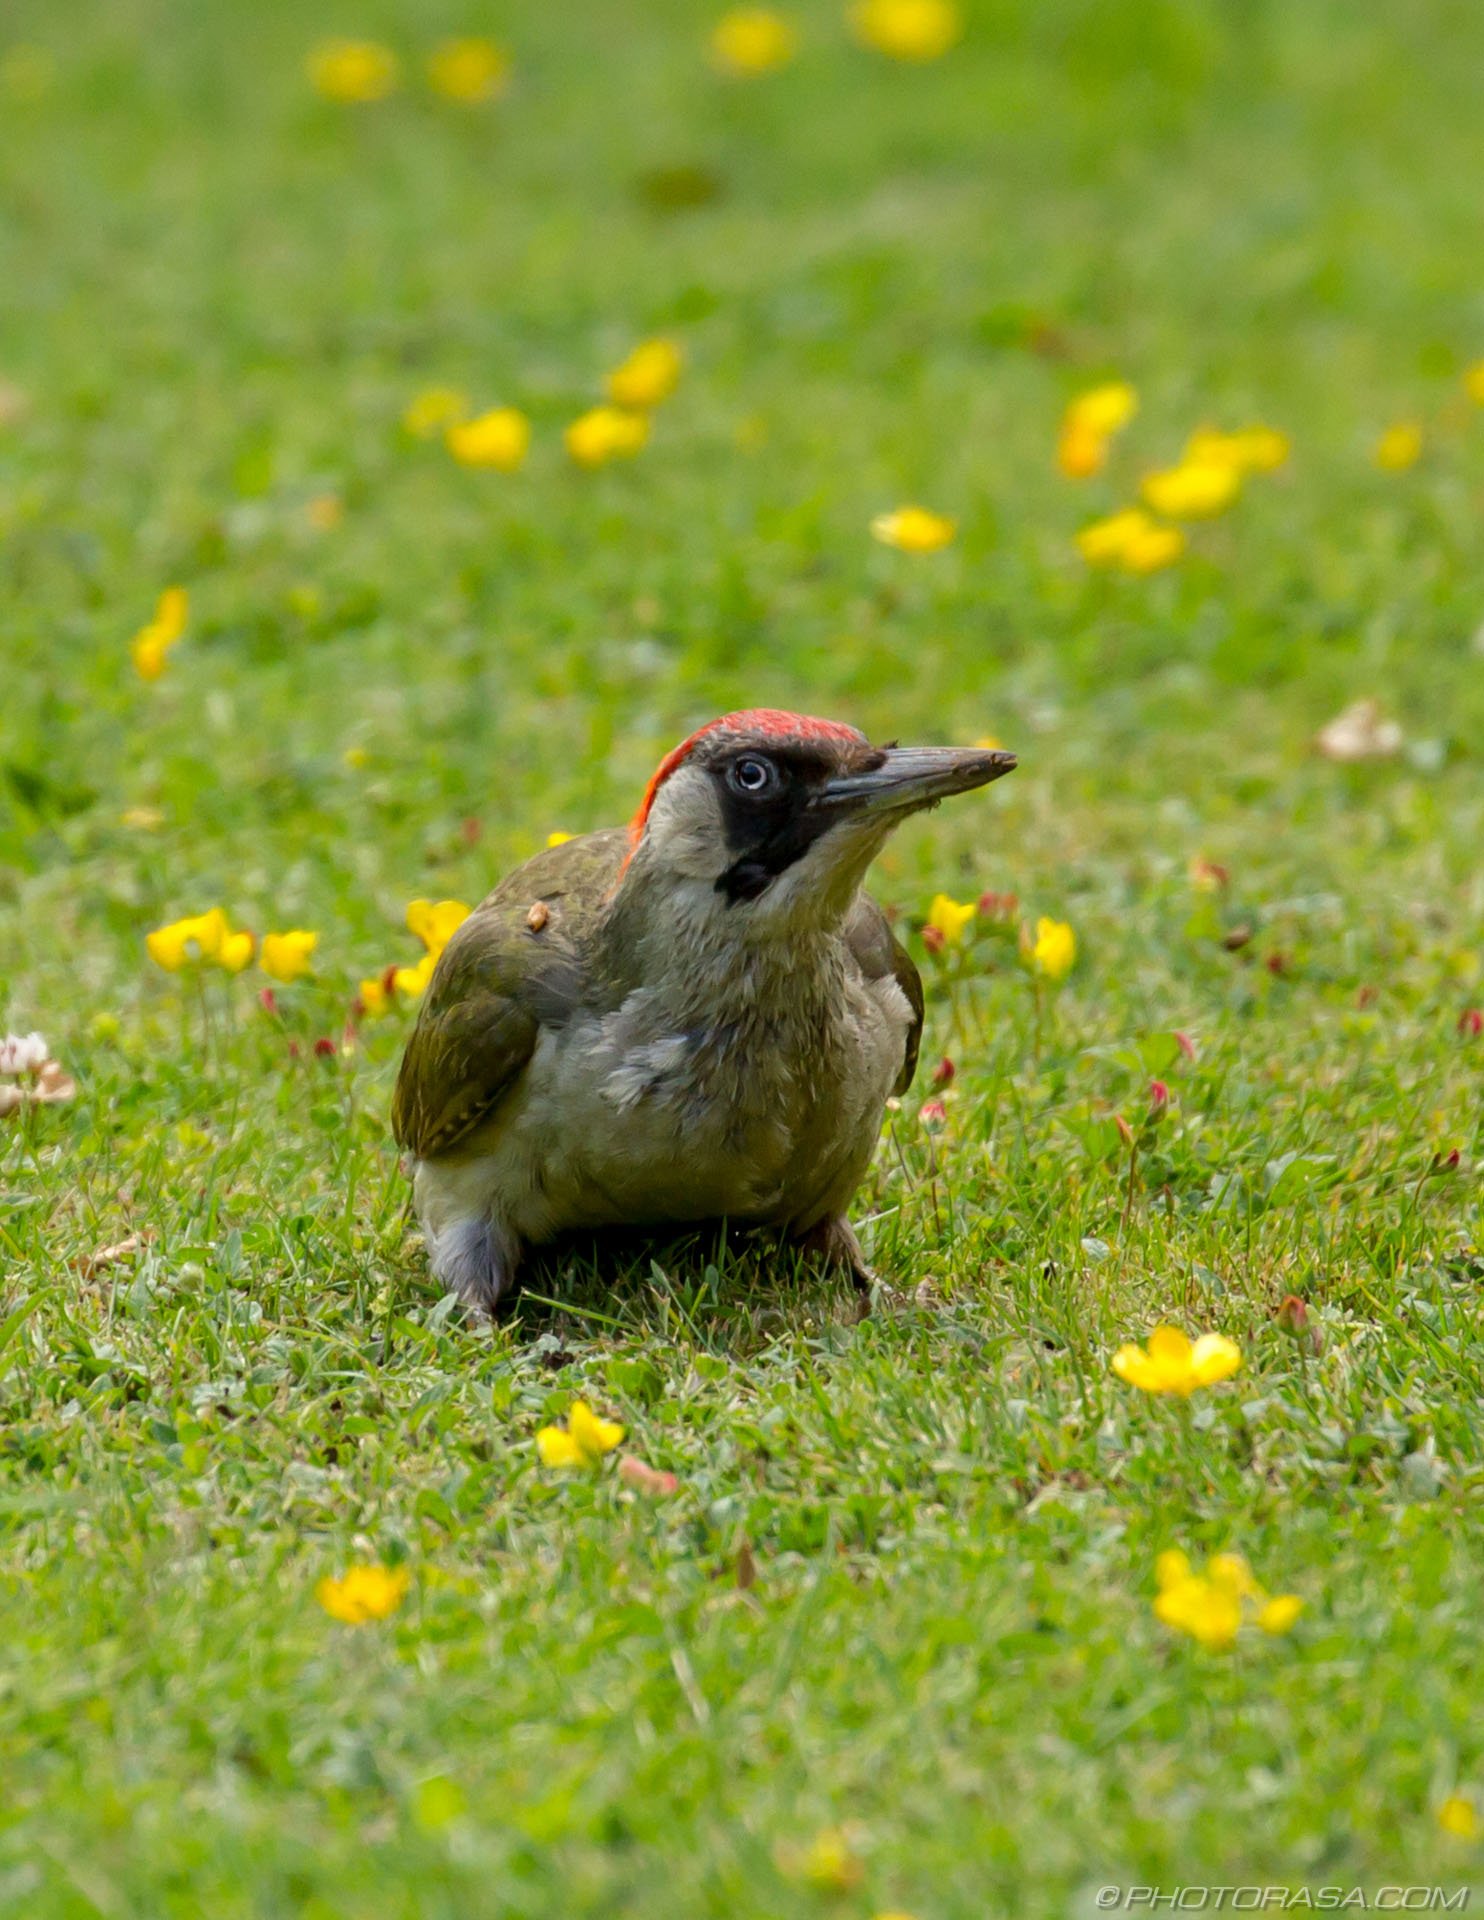 http://photorasa.com/green-woodpecker/woodpecker-looking-up/